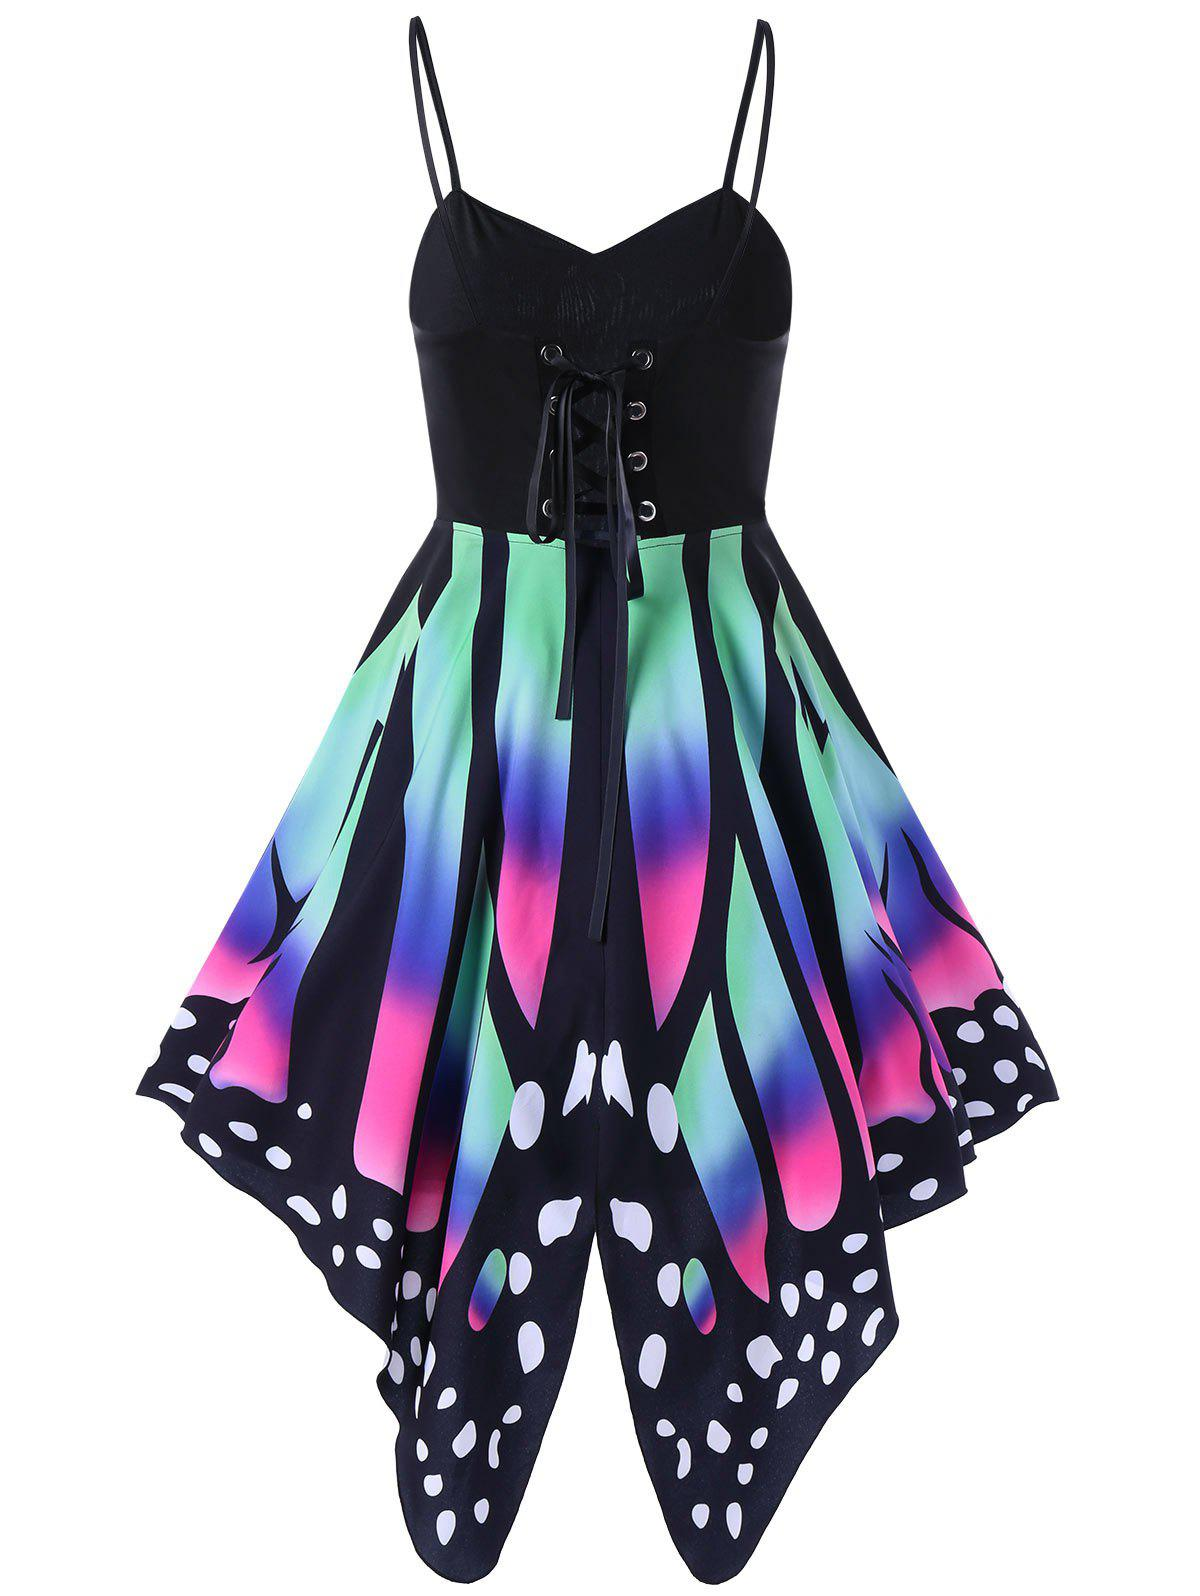 High Waist Butterfly Print Lace Up DressWOMEN<br><br>Size: 2XL; Color: COLORMIX; Style: Gothic; Material: Polyester,Spandex; Silhouette: A-Line; Dresses Length: Knee-Length; Neckline: Spaghetti Strap; Sleeve Length: Sleeveless; Pattern Type: Butterfly; With Belt: No; Season: Summer; Weight: 0.3500kg; Package Contents: 1 x Dress;